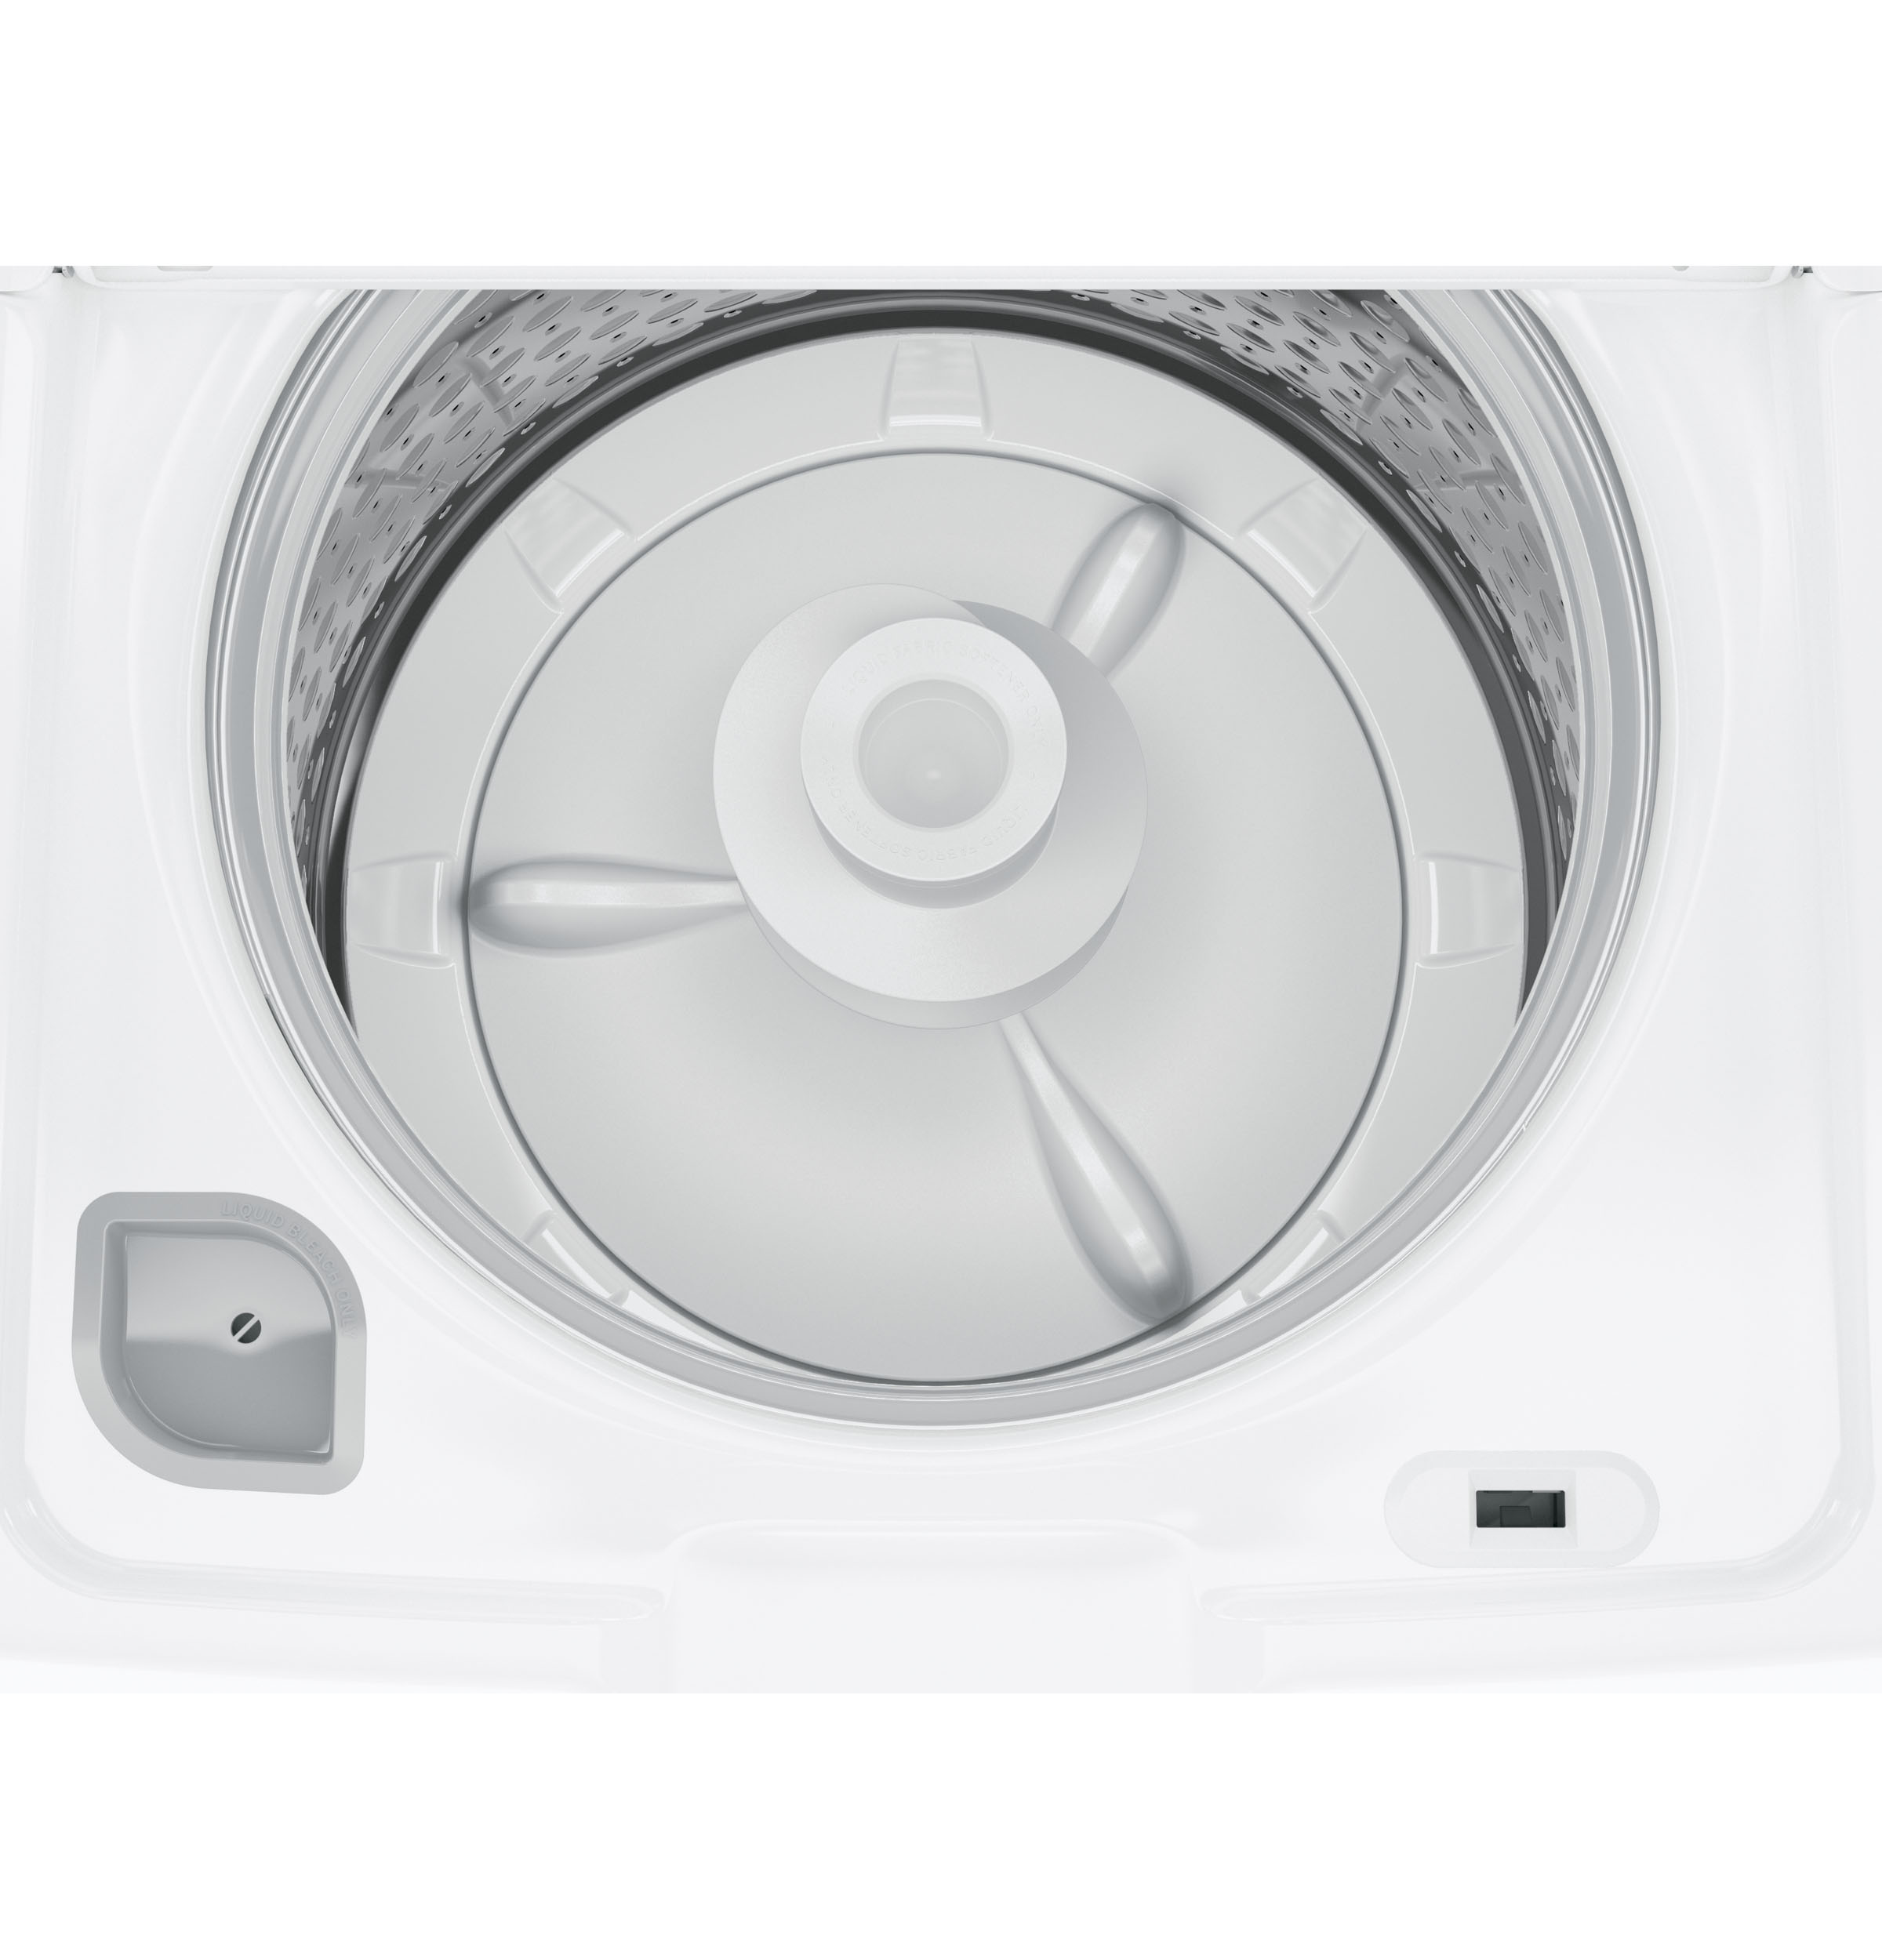 Model: GTW460ASJWW | GE GE® 4.2 cu. ft. Capacity Washer with Stainless Steel Basket